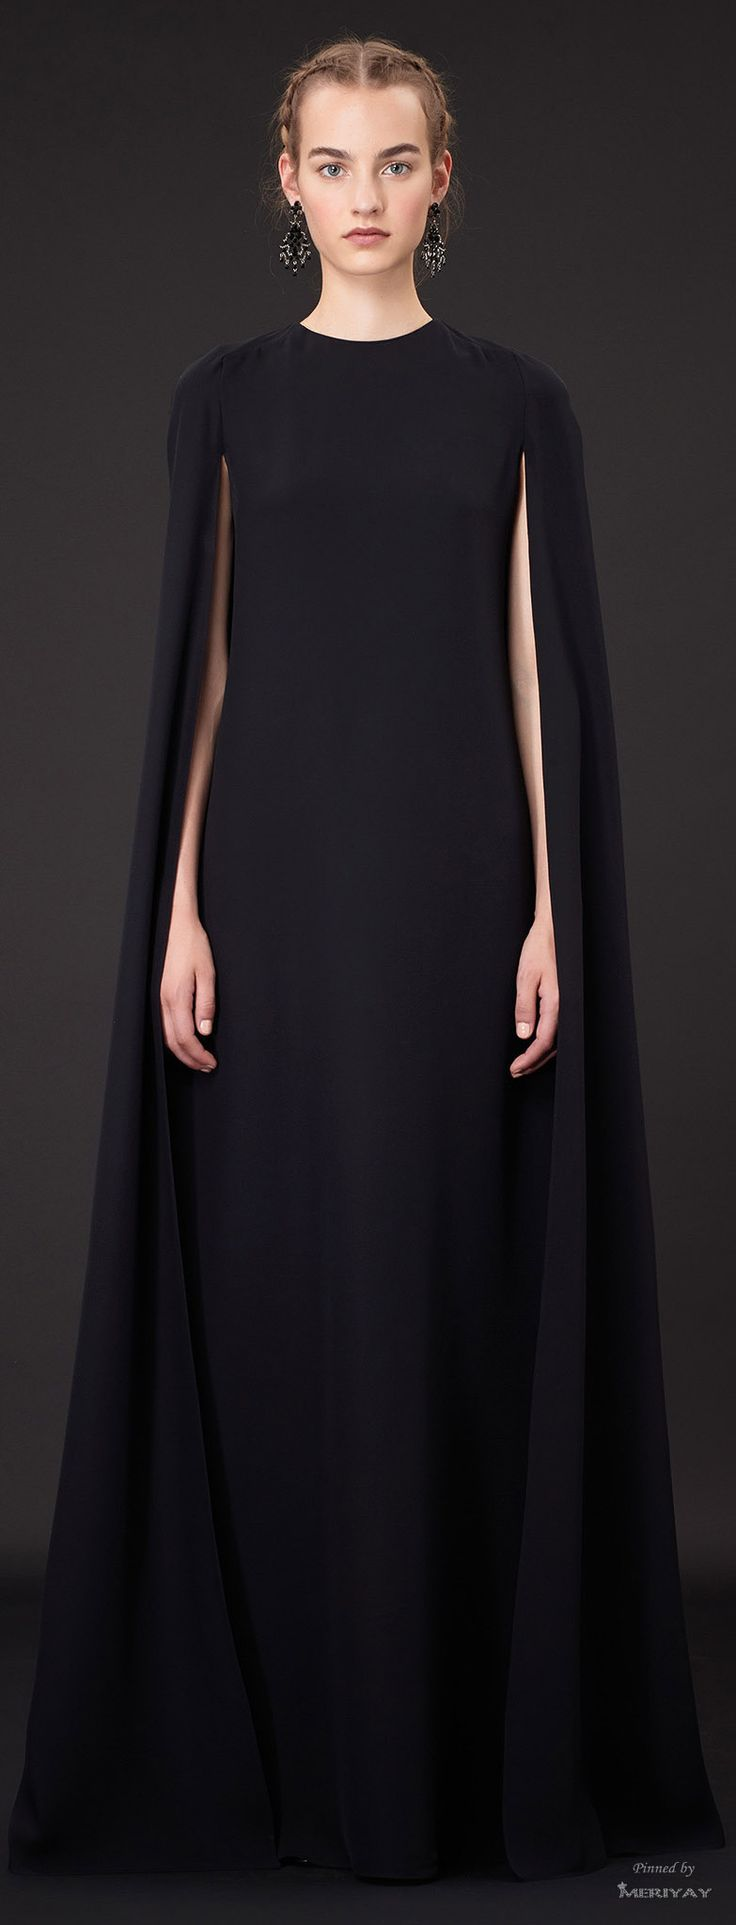 Understated Elegance - long black cape dress with clean minimal silhouette - elegant simplicity; haute couture gown // Valentino Resort 2015